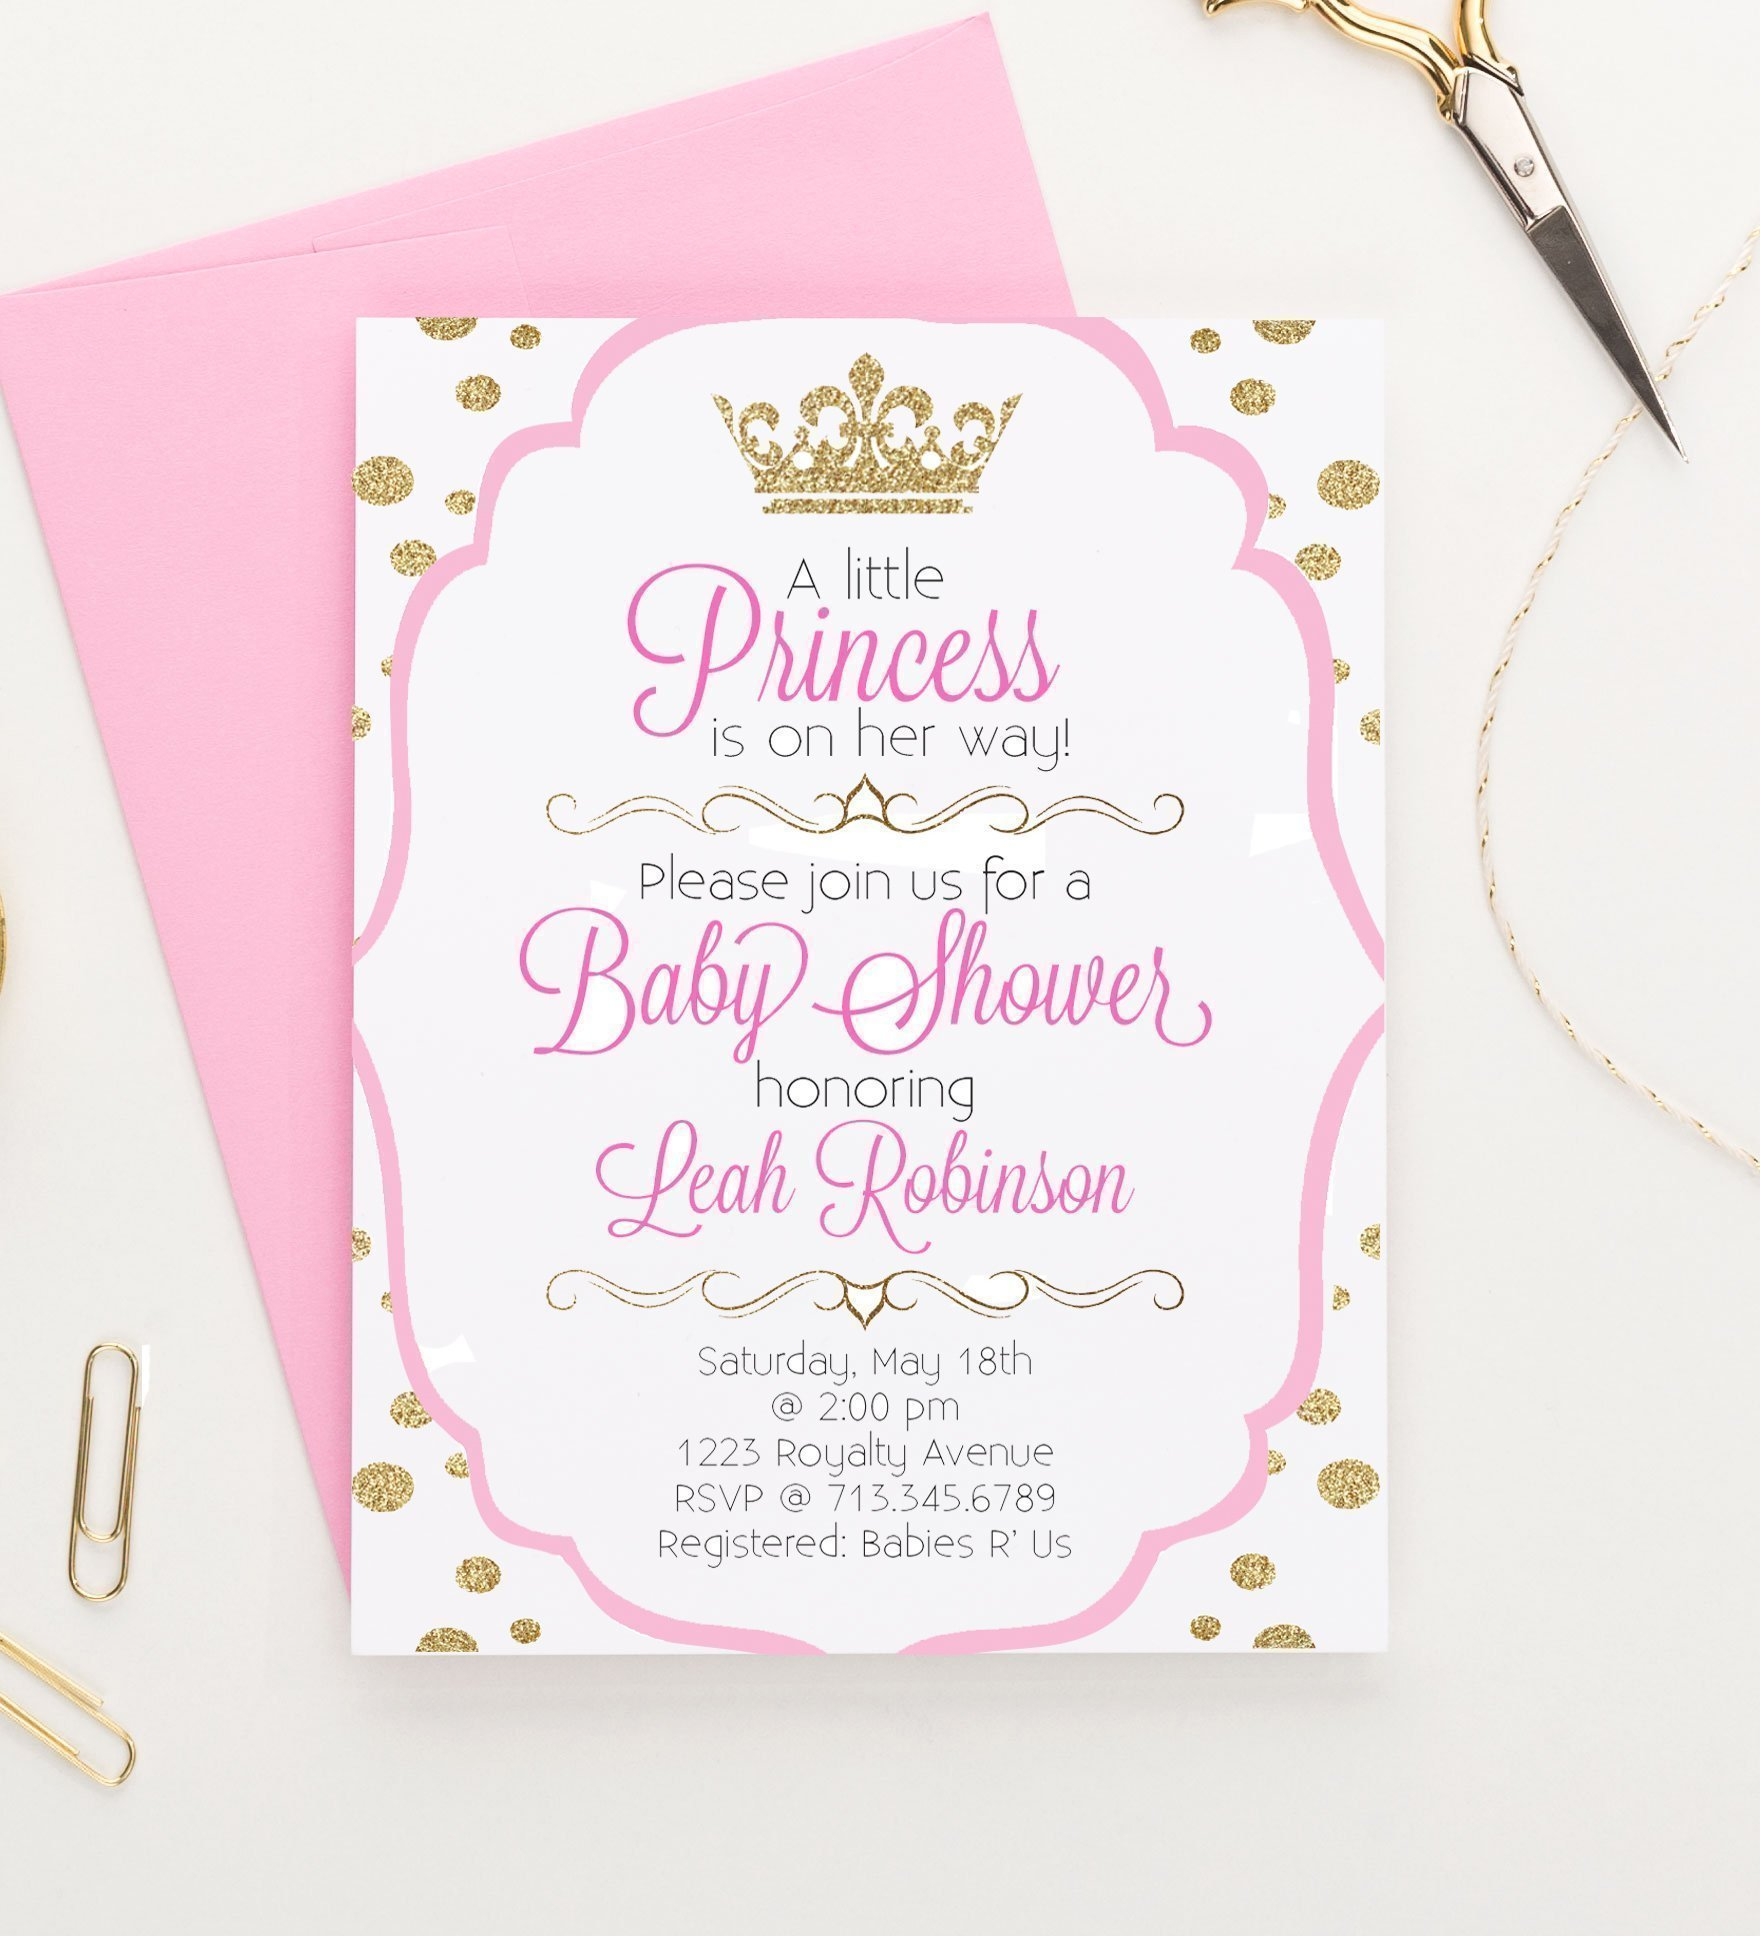 Little Princess Baby Shower Invitations, Princess Baby Shower Invitations, Royal Princess Baby Shower Invitations, Modern Baby Shower Invitation, Your choice of quantity and envelope color,